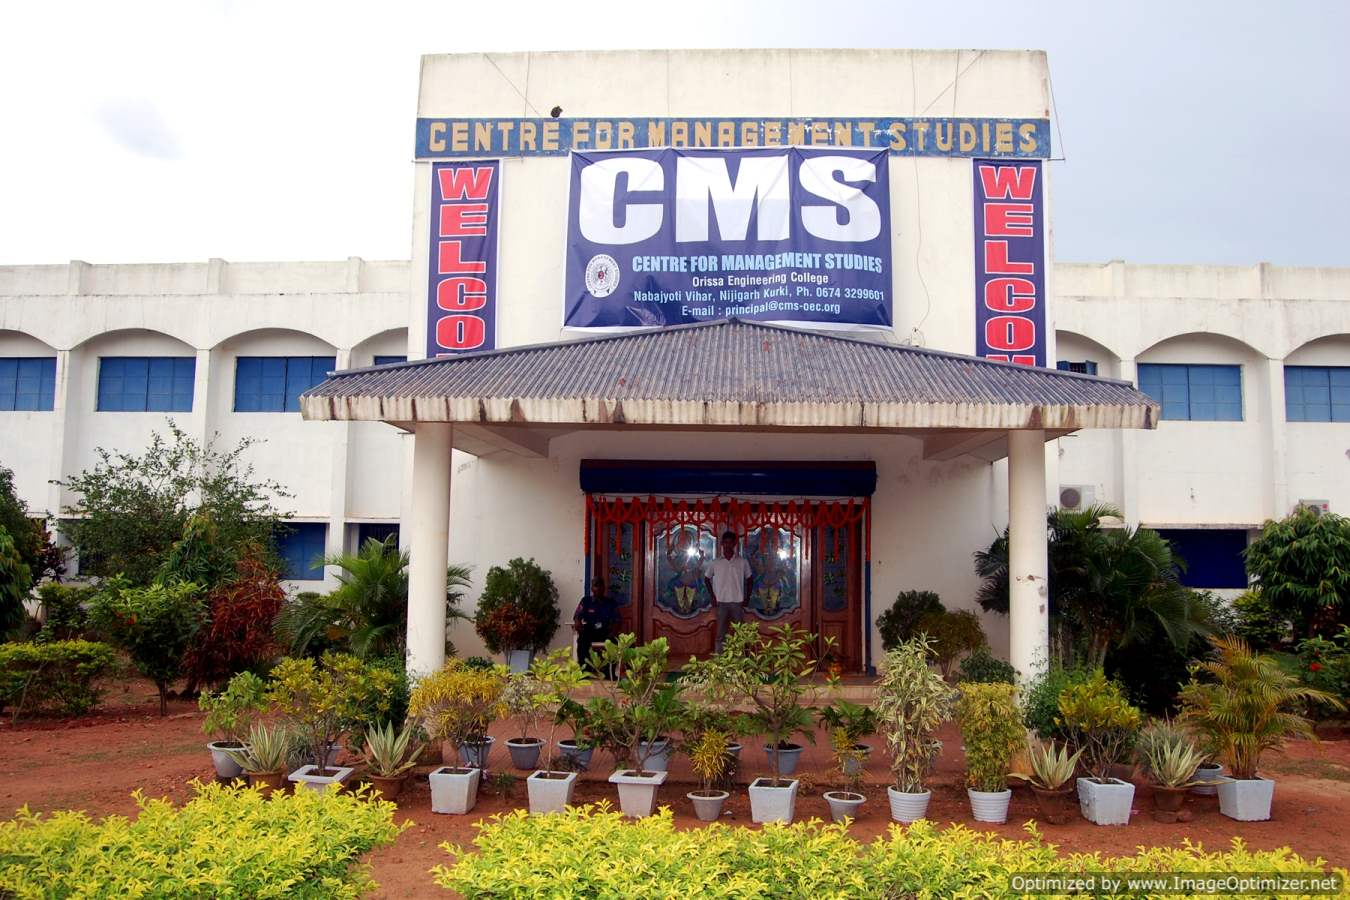 Center for Management Studies - Orissa Engineering College